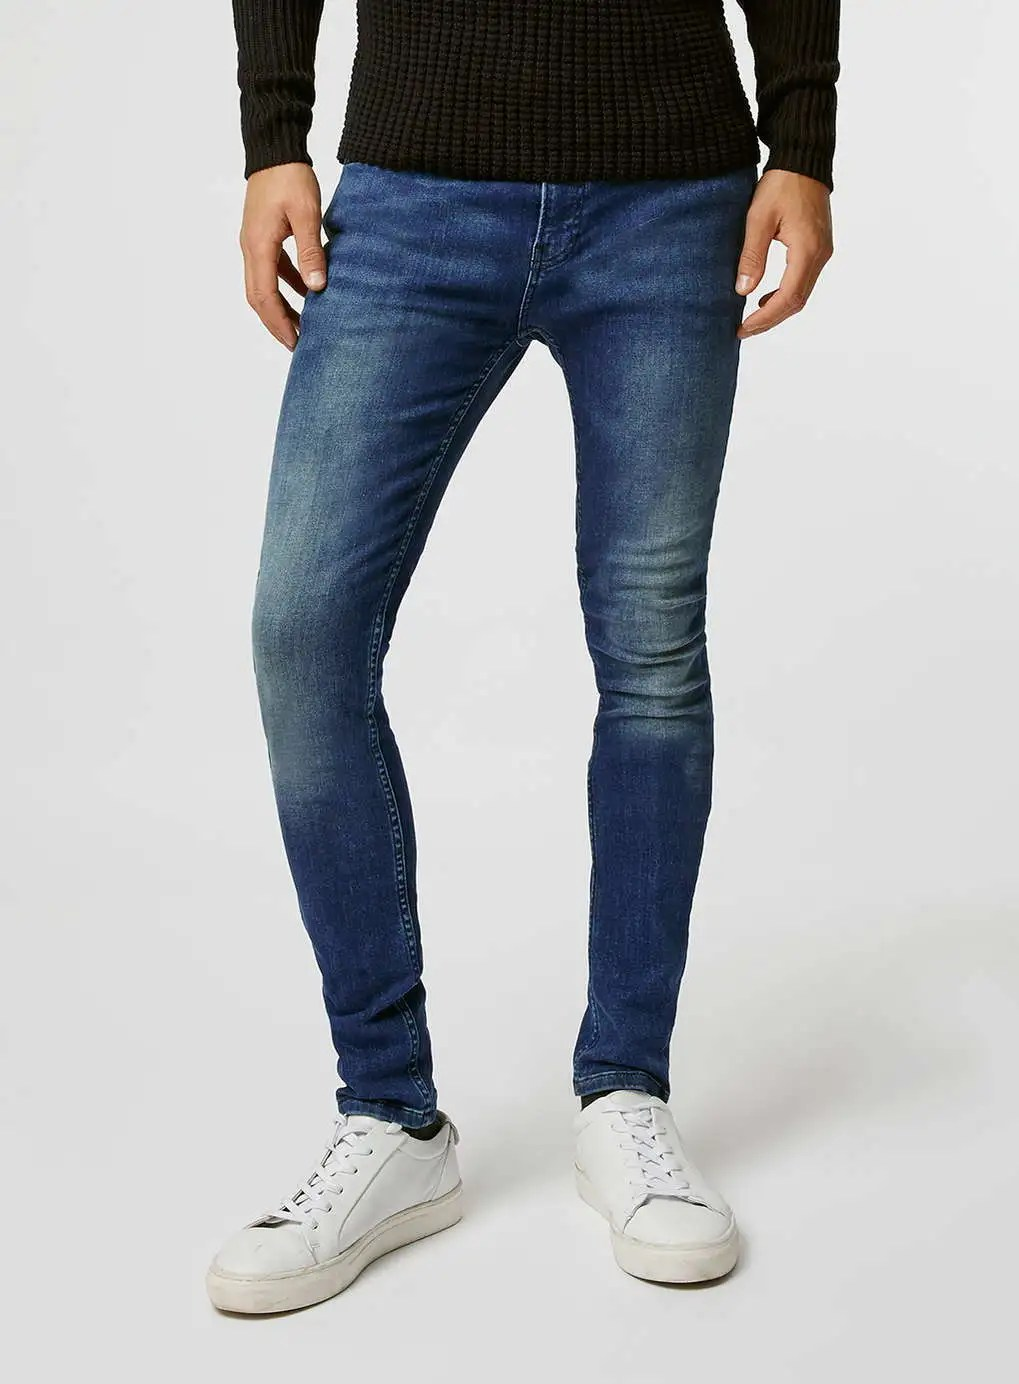 topman-spray-on-skinny-jeans